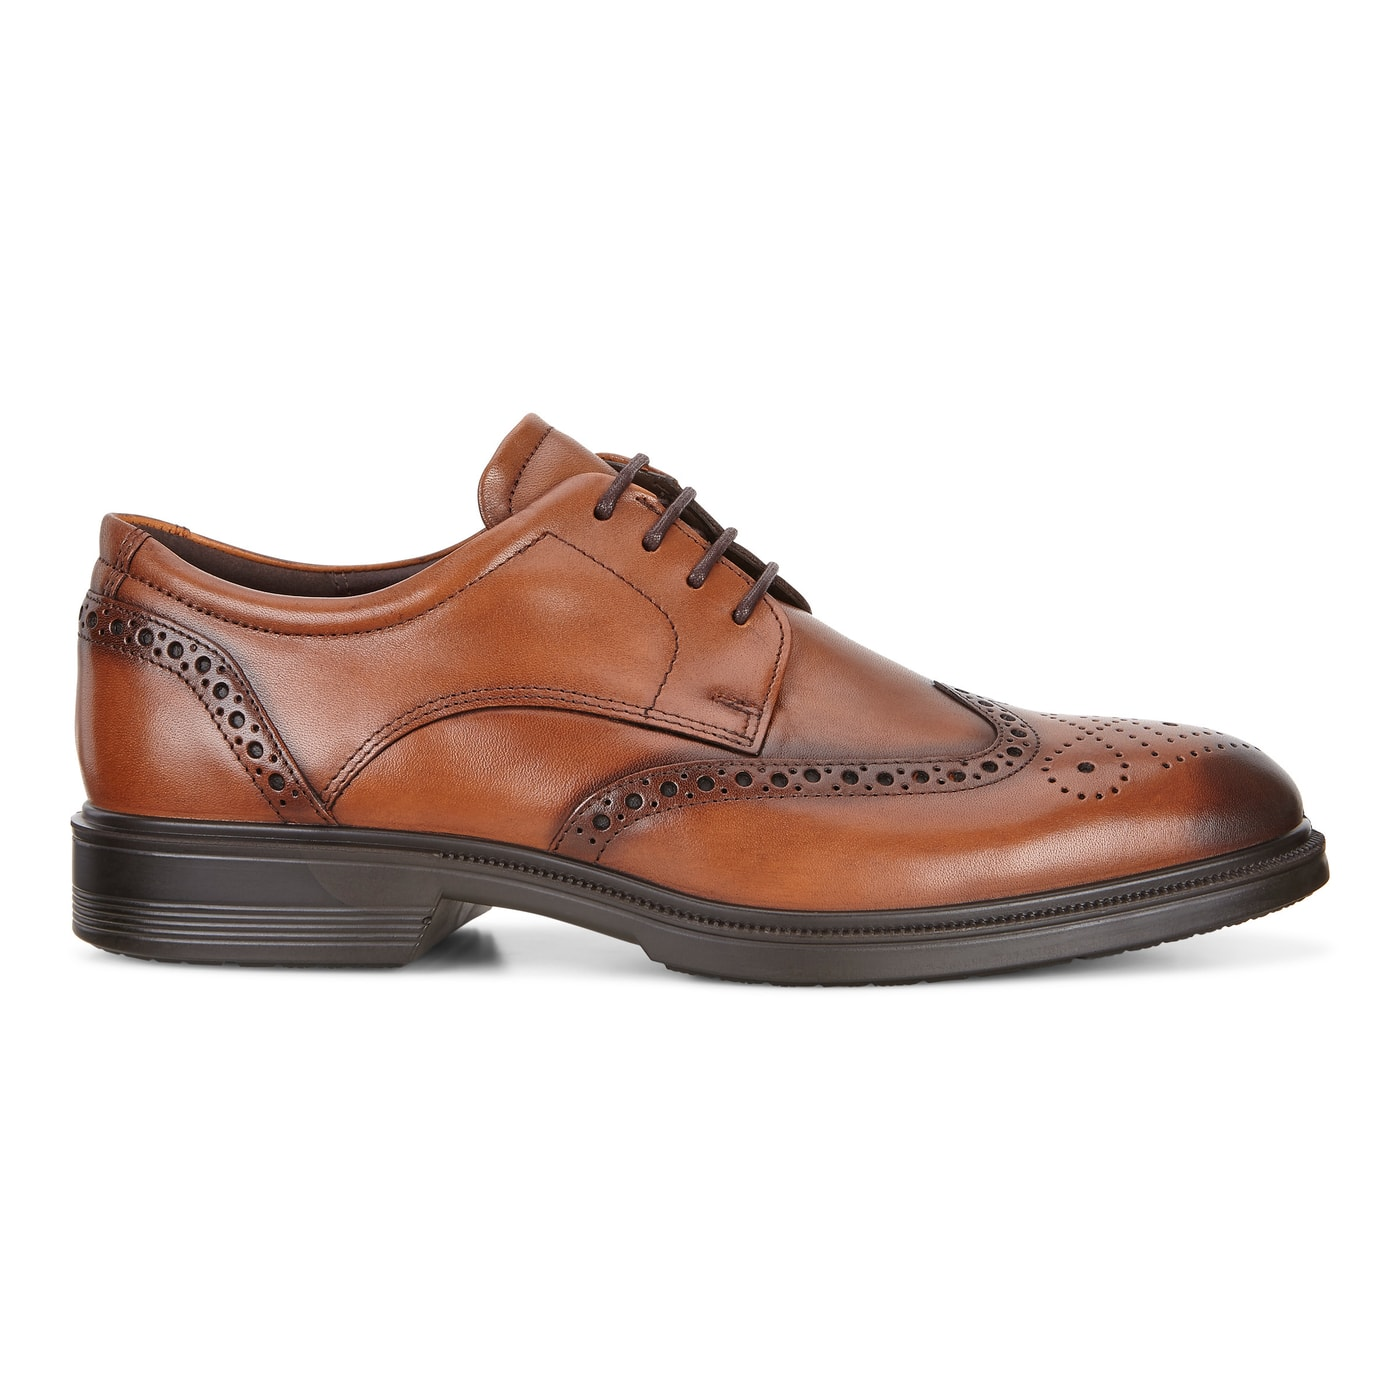 a8728b922d ECCO Shoes: Men's Jamestown Mid Boot $70, Men's Lisbon Brogue Tie ...